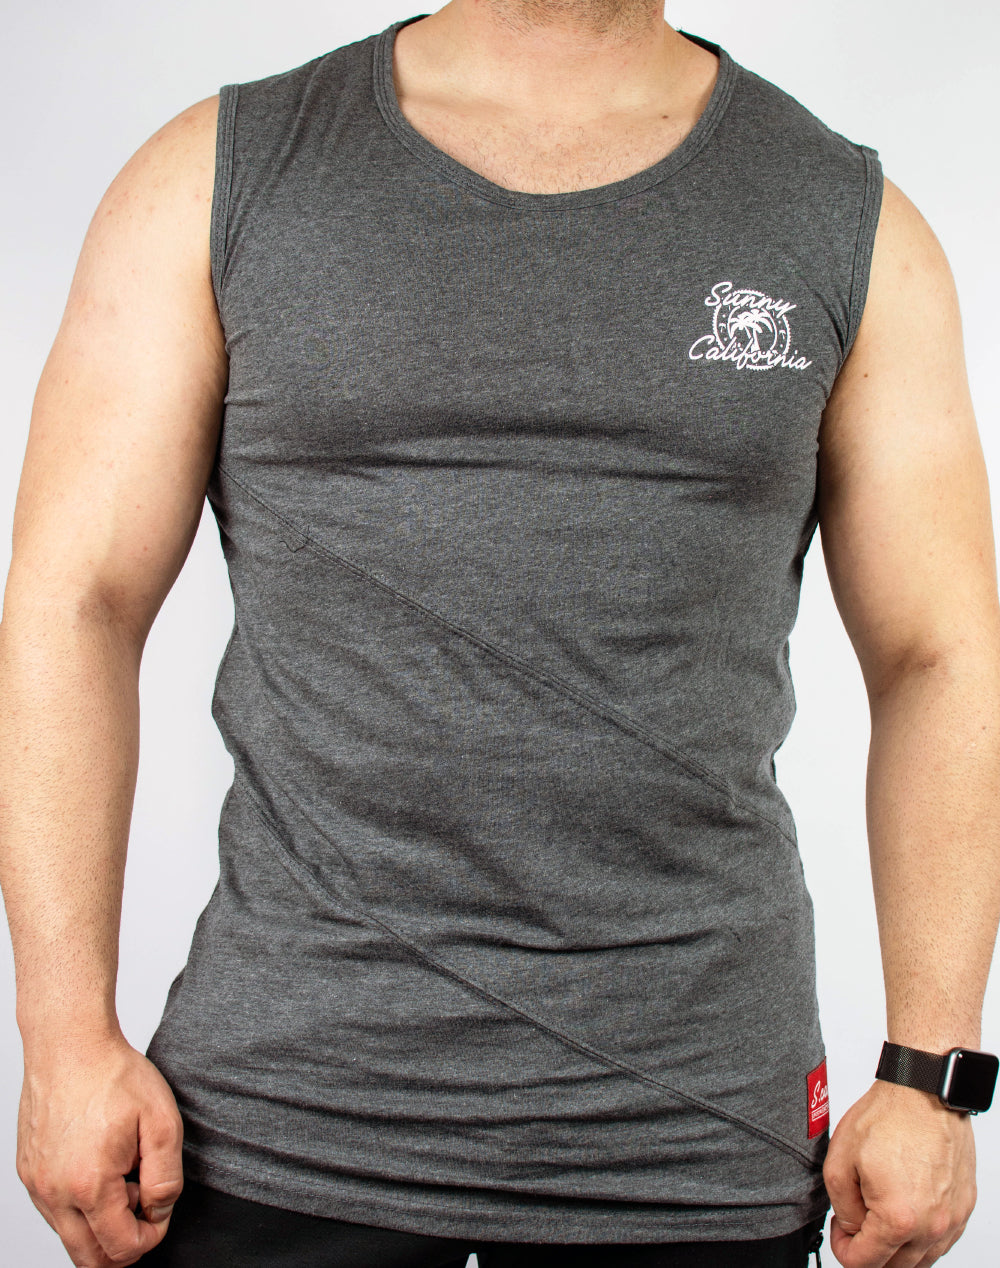 Sunny California Muscle Tank (Charcoal)